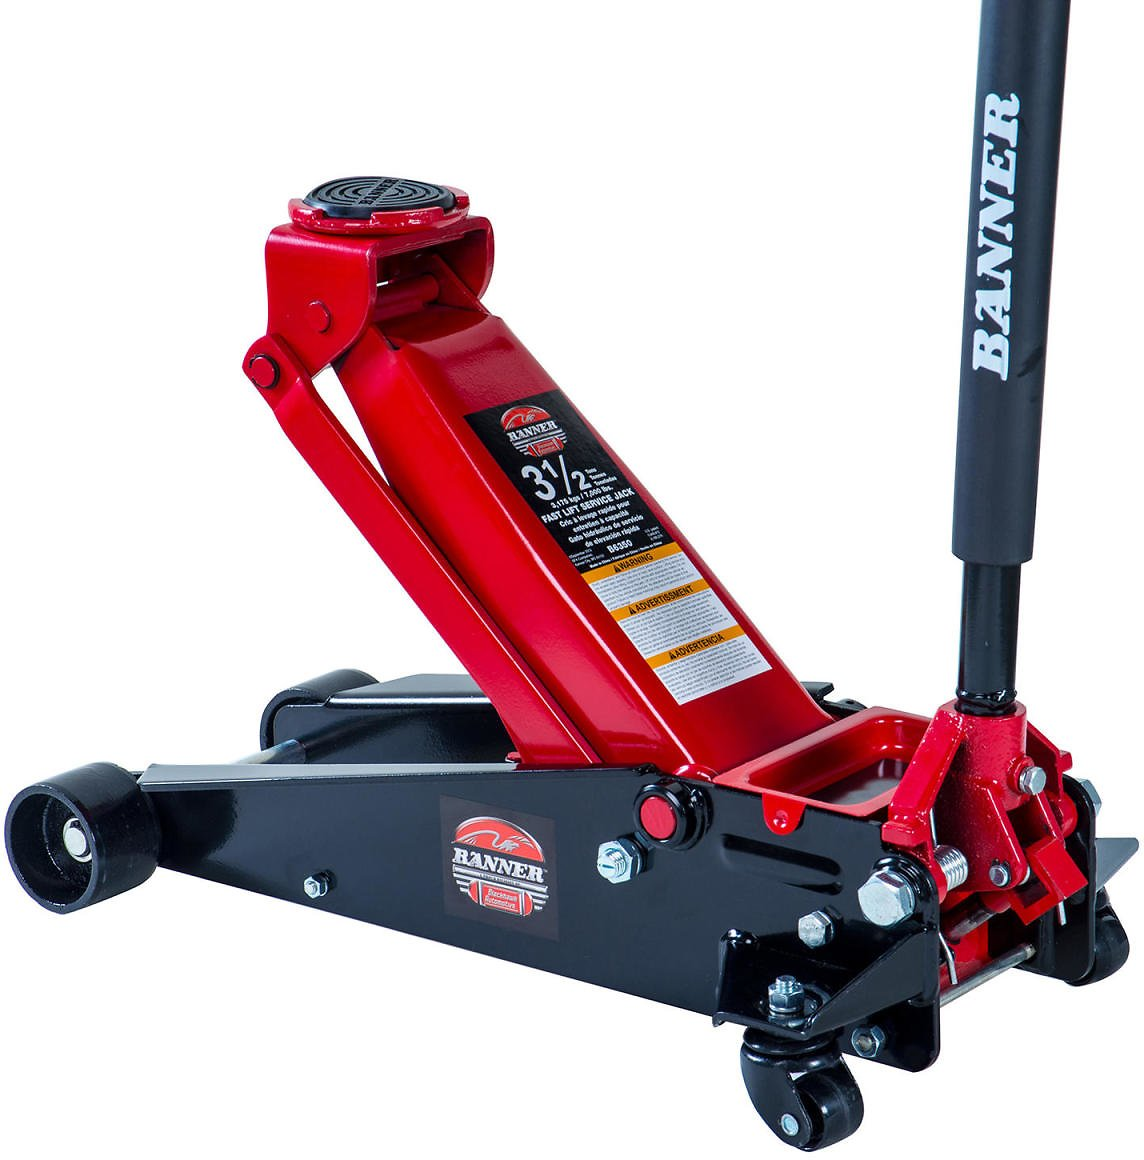 Blackhawk Fast-lift Service Jack - 3.5 Ton Capacity (Black/Red) - Sam's Club